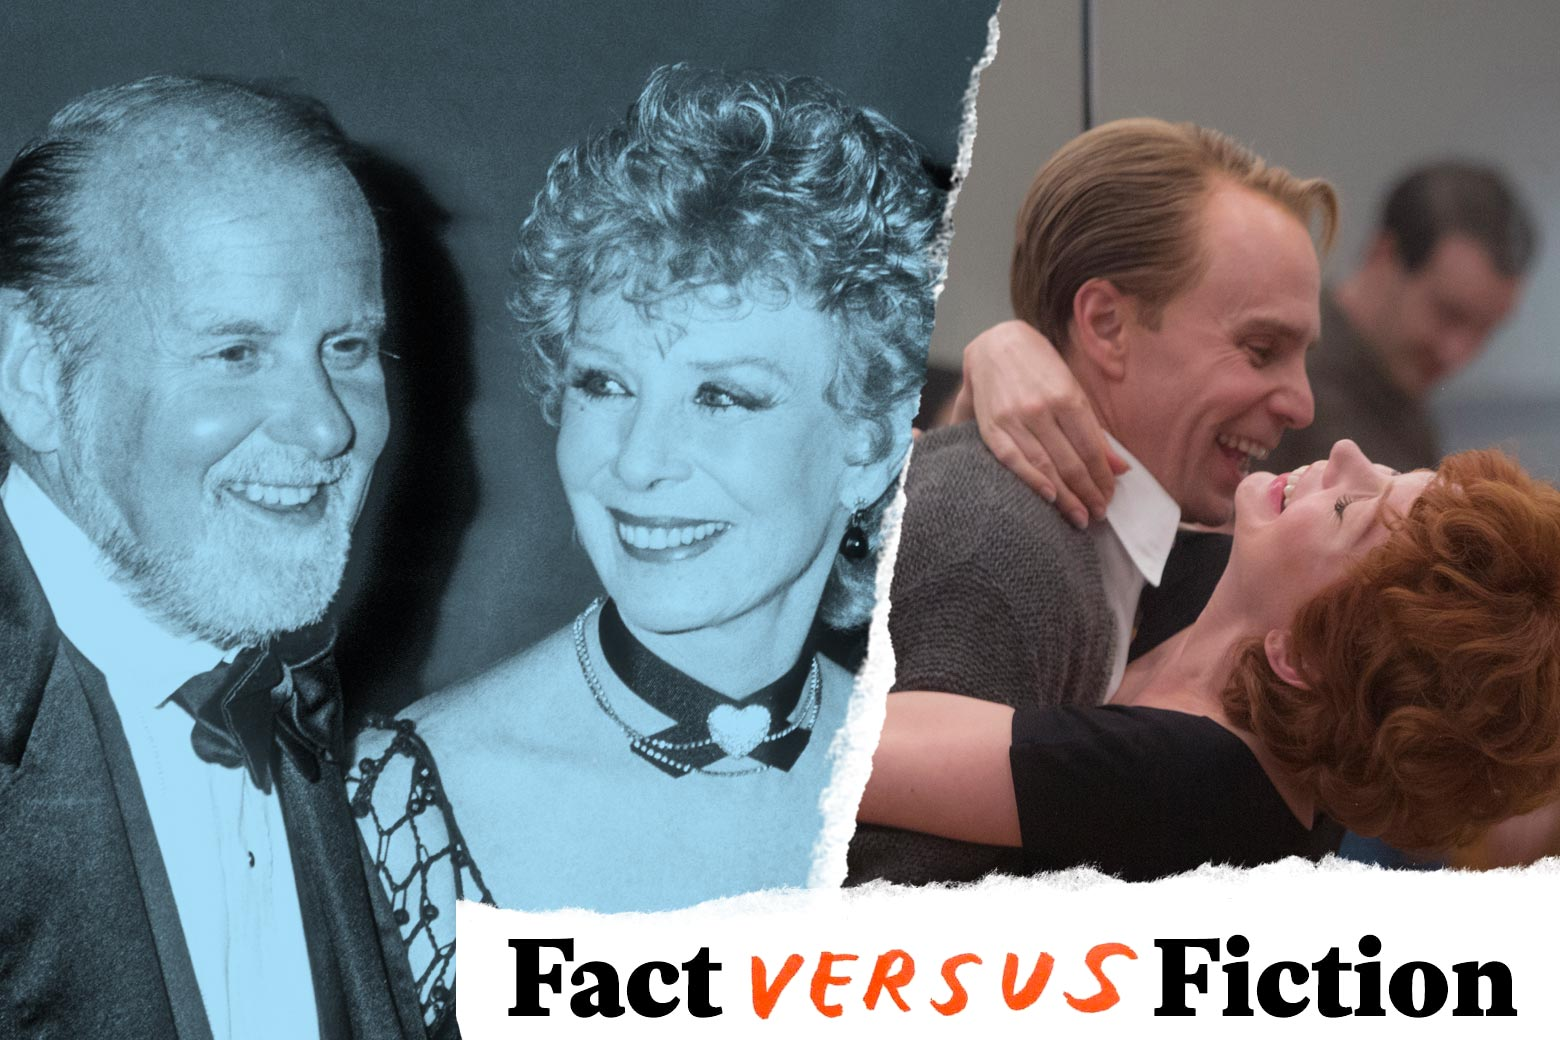 The real Bob Fosse and Gwen Verdon, and Sam Rockwell as Fosse and Michelle Williams as Verdon in Fosse/Verdon.